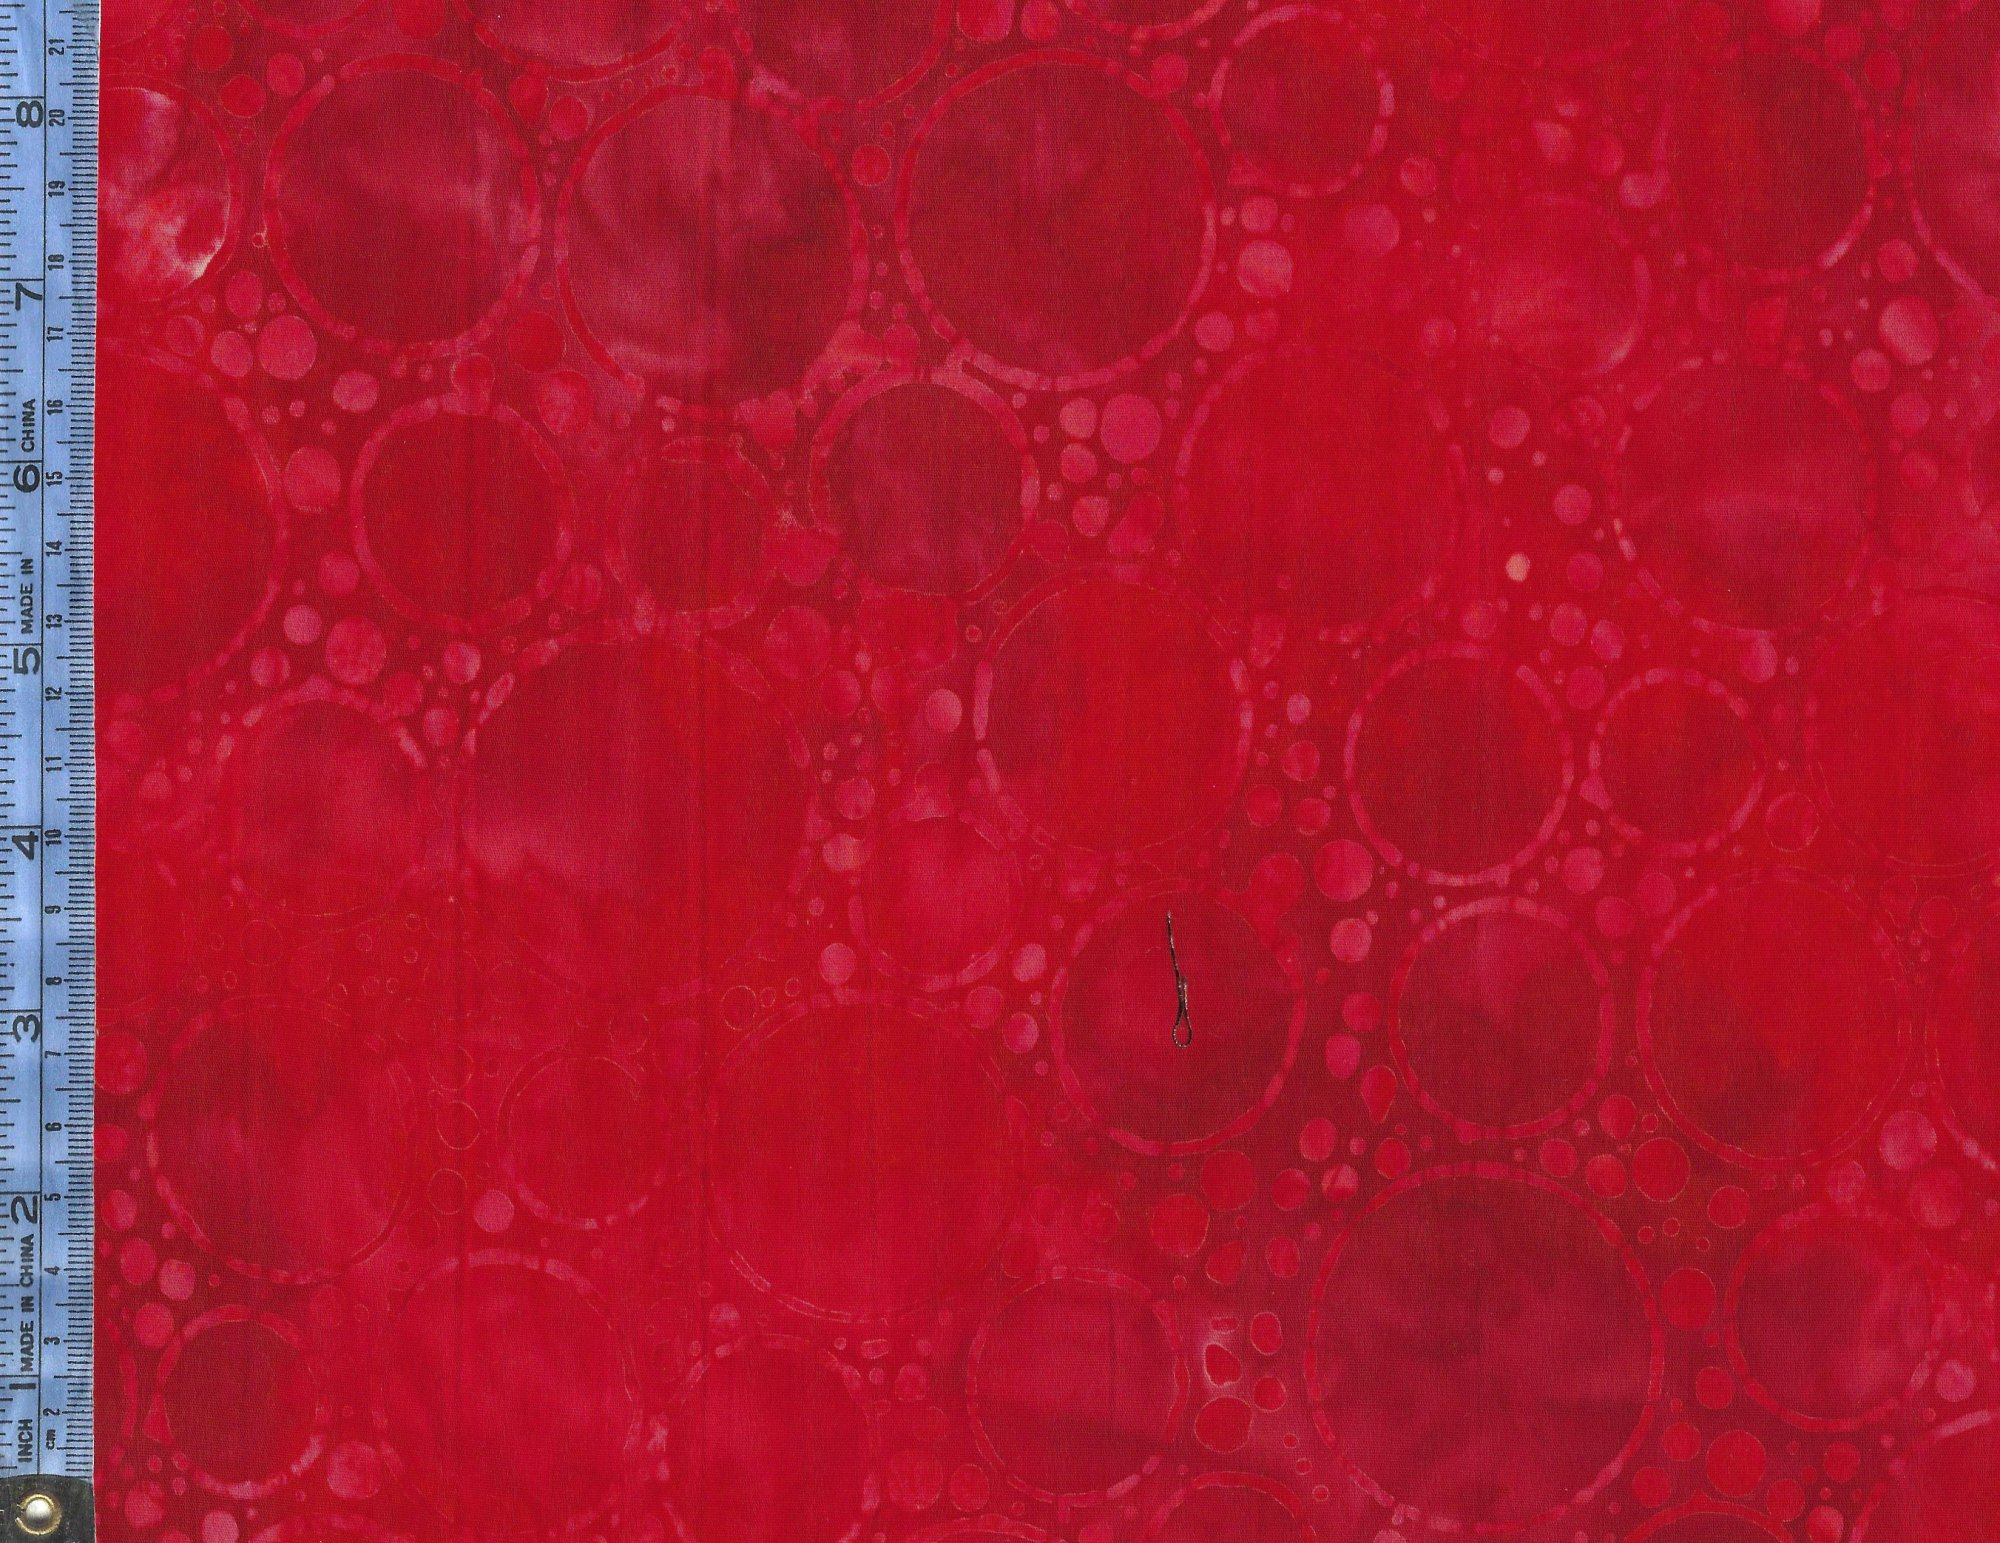 Color Source 7 - (16154-91-crimson) pale  red circles and dots on red background